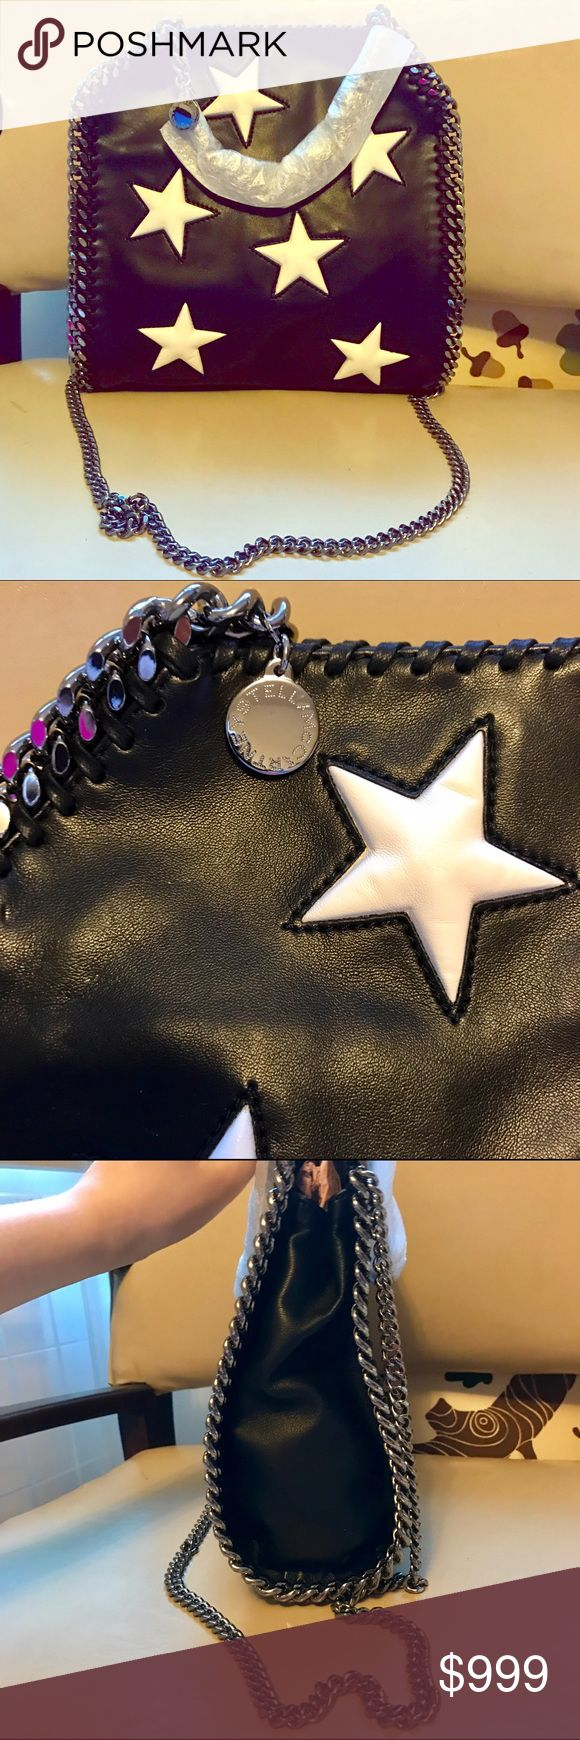 """1 DAY SALE NWT Stella McCartney Falabella ⭐️ Bag This is a gorgeous, mint and 100% authentic Stella McCartney Falabella bag in black w/white stars on one side. It can be worn with the stars or the plain black side showing. This is vegan and a very popular staple for celebrities & fashionistas. This is the mini size with gunmetal chain straps- both tote straps and crossbody. I love this bag but can't afford to keep it, so here's a great chance for you to own this """"it"""" bag. No trades please…"""